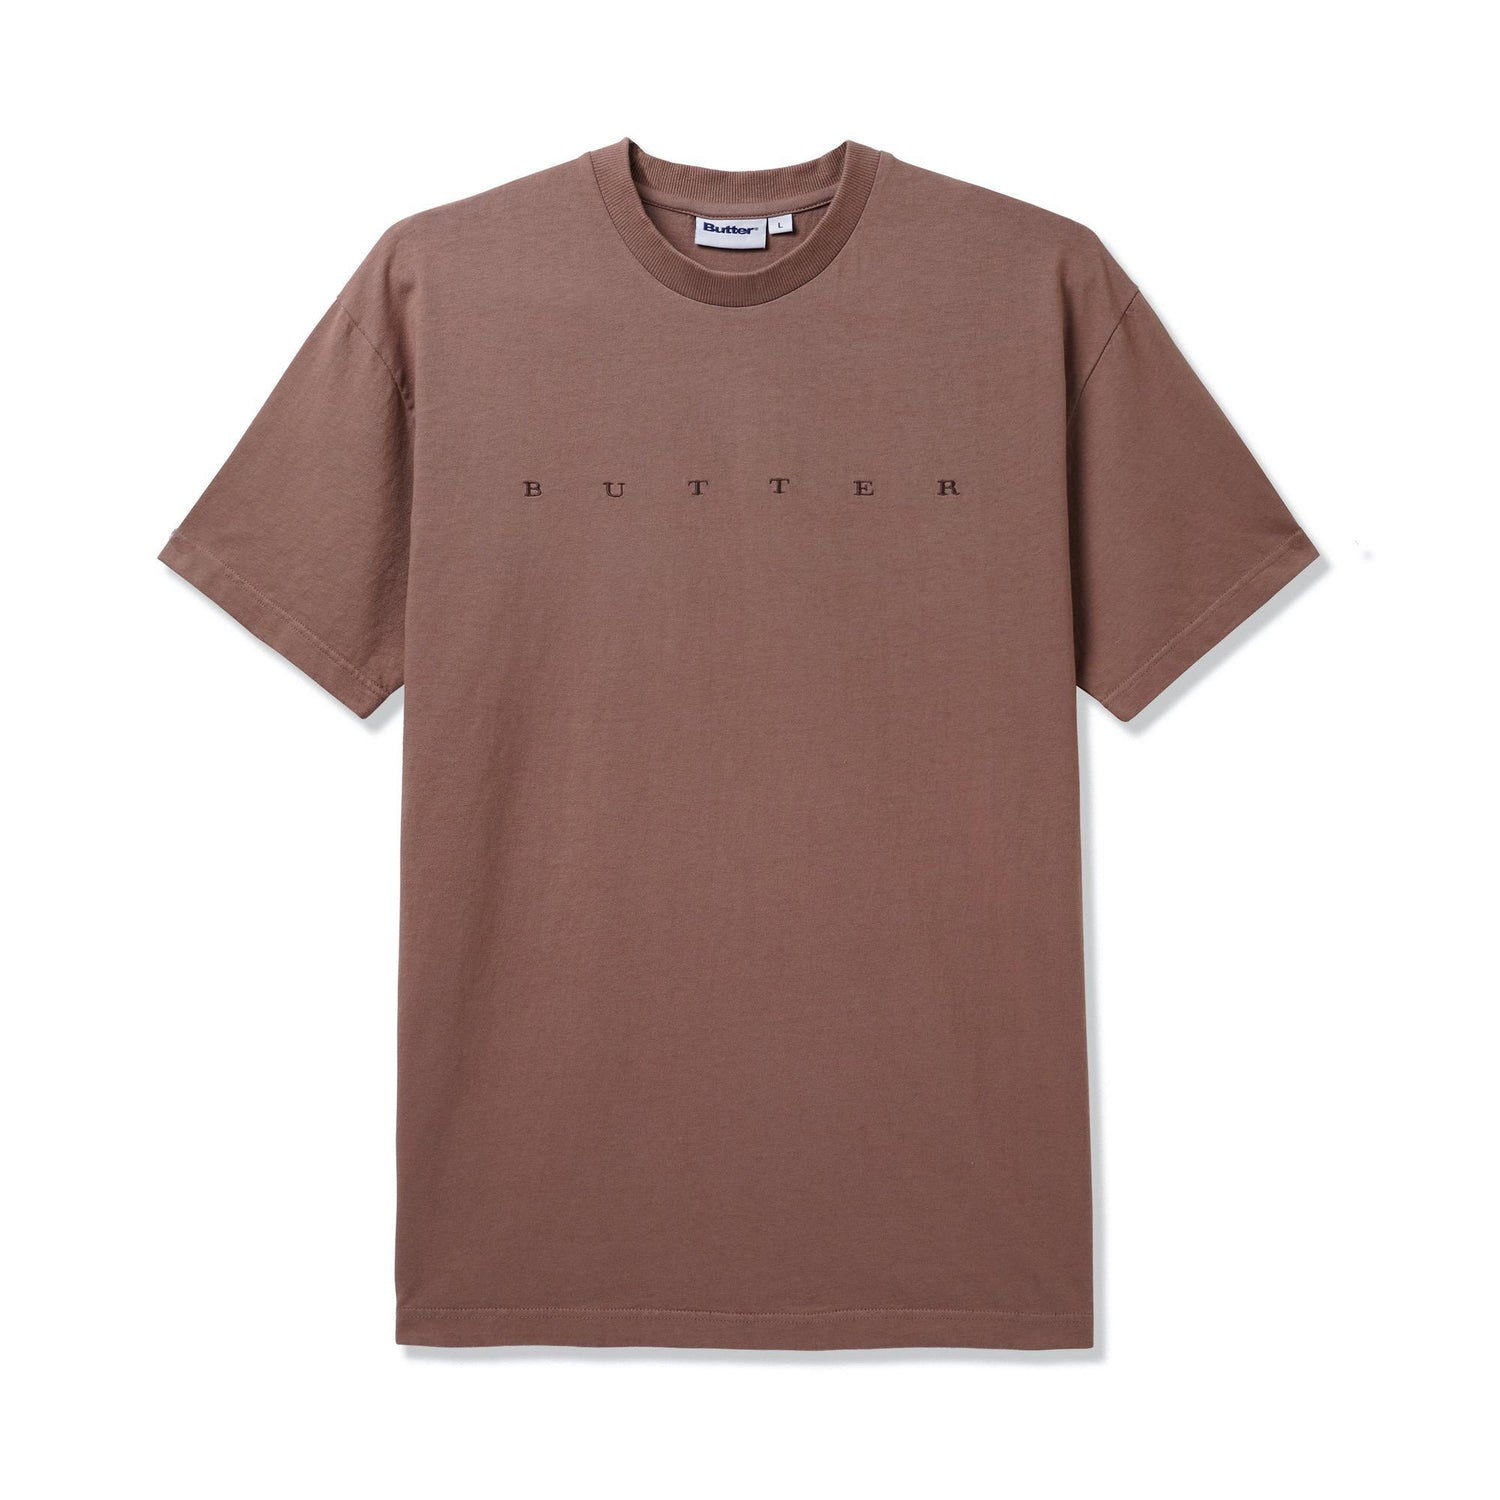 Hampshire Pigment Dye Tee, Bark